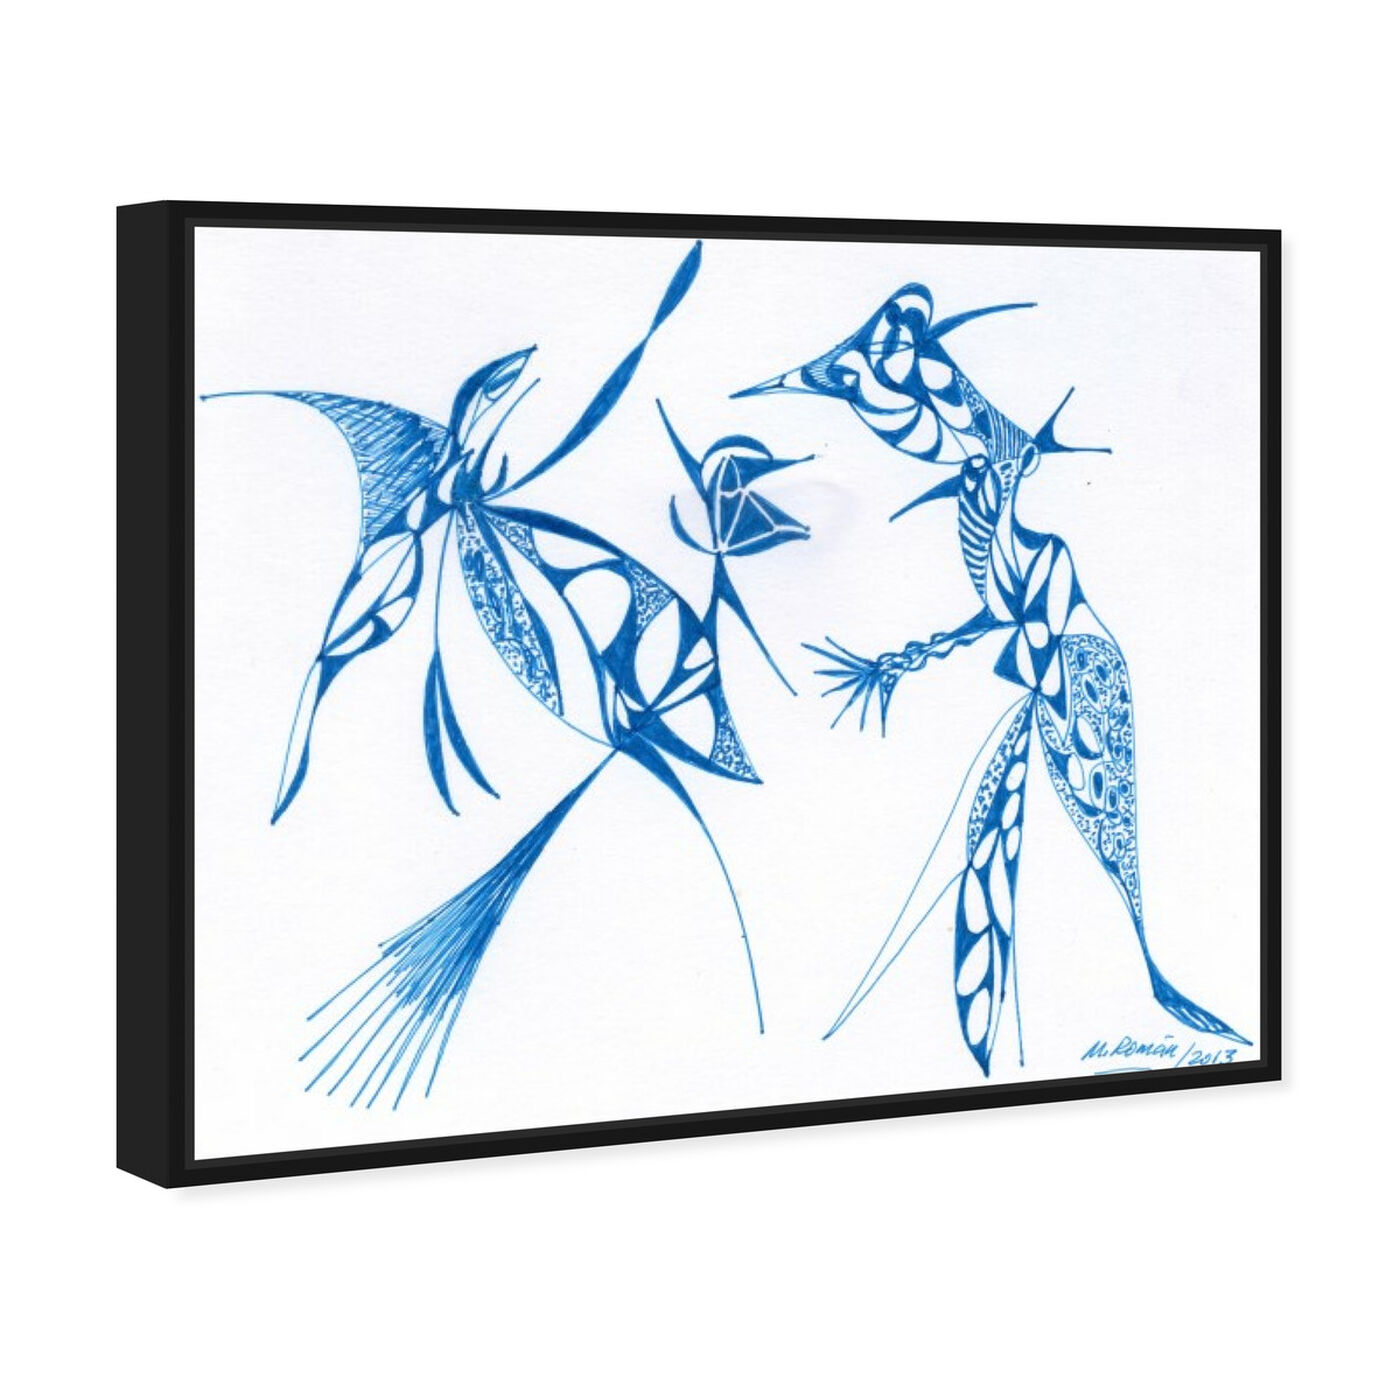 Angled view of Dueling Herons featuring abstract and shapes art.